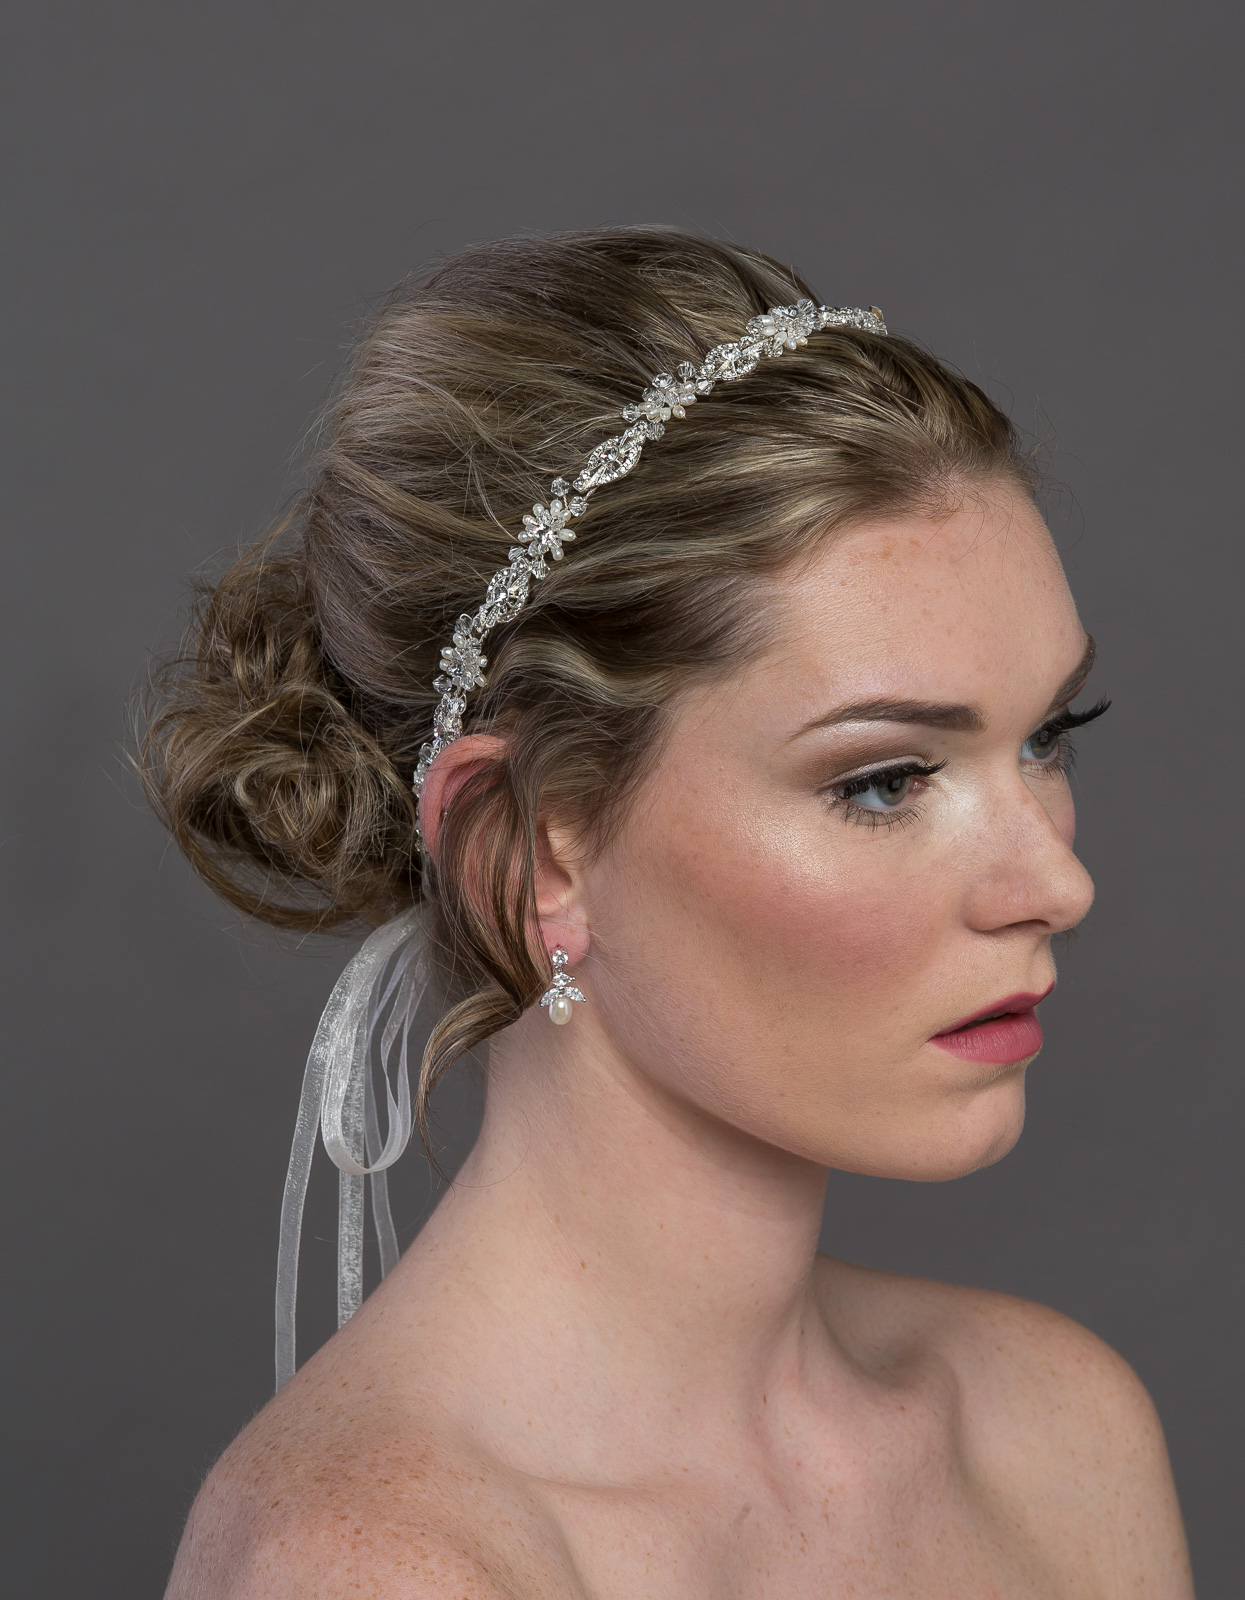 Bridal Classics Headbands & Wreaths HB-7084